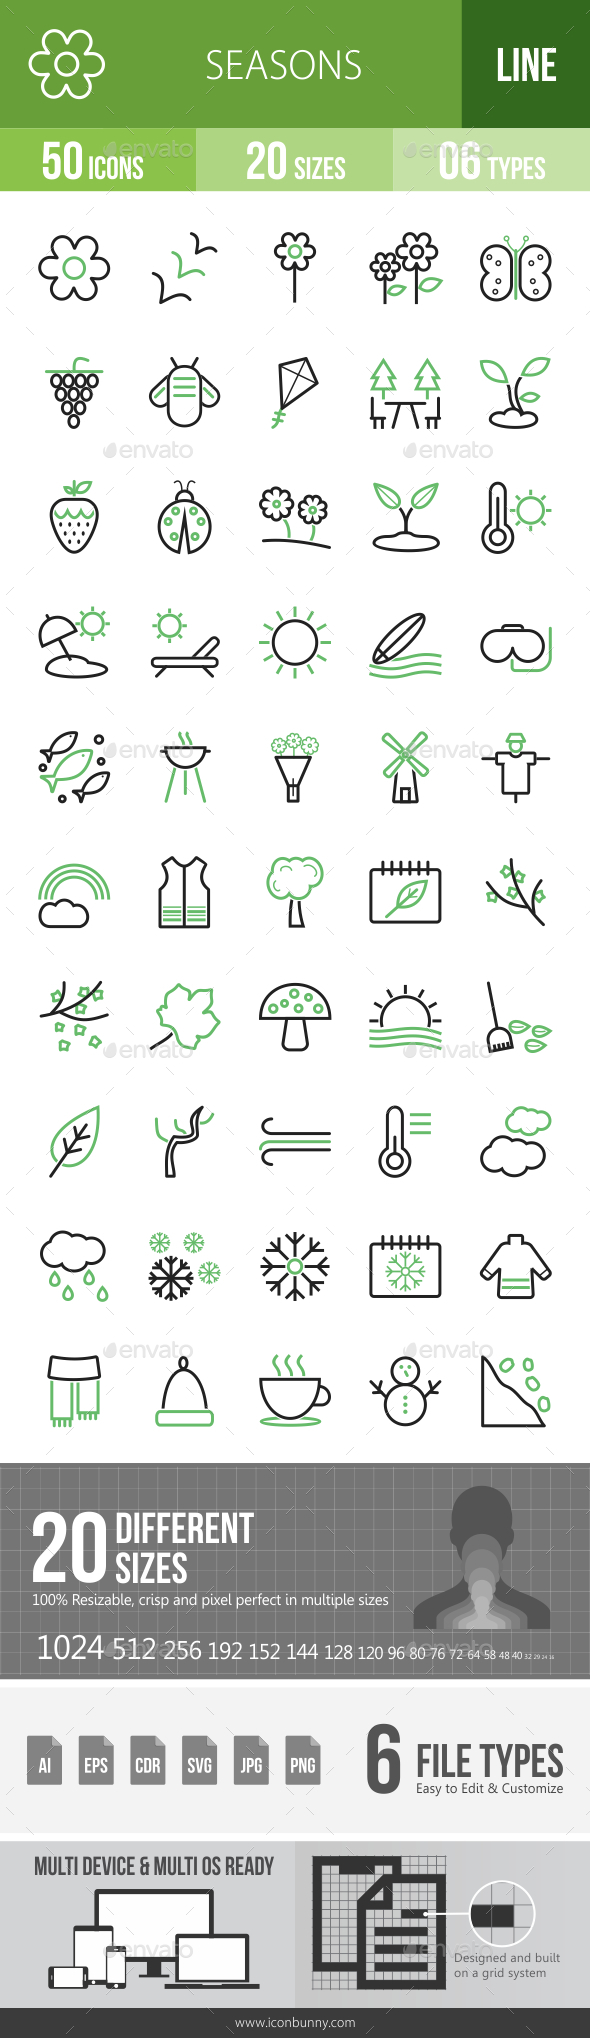 Seasons Line Green & Black Icons - Icons